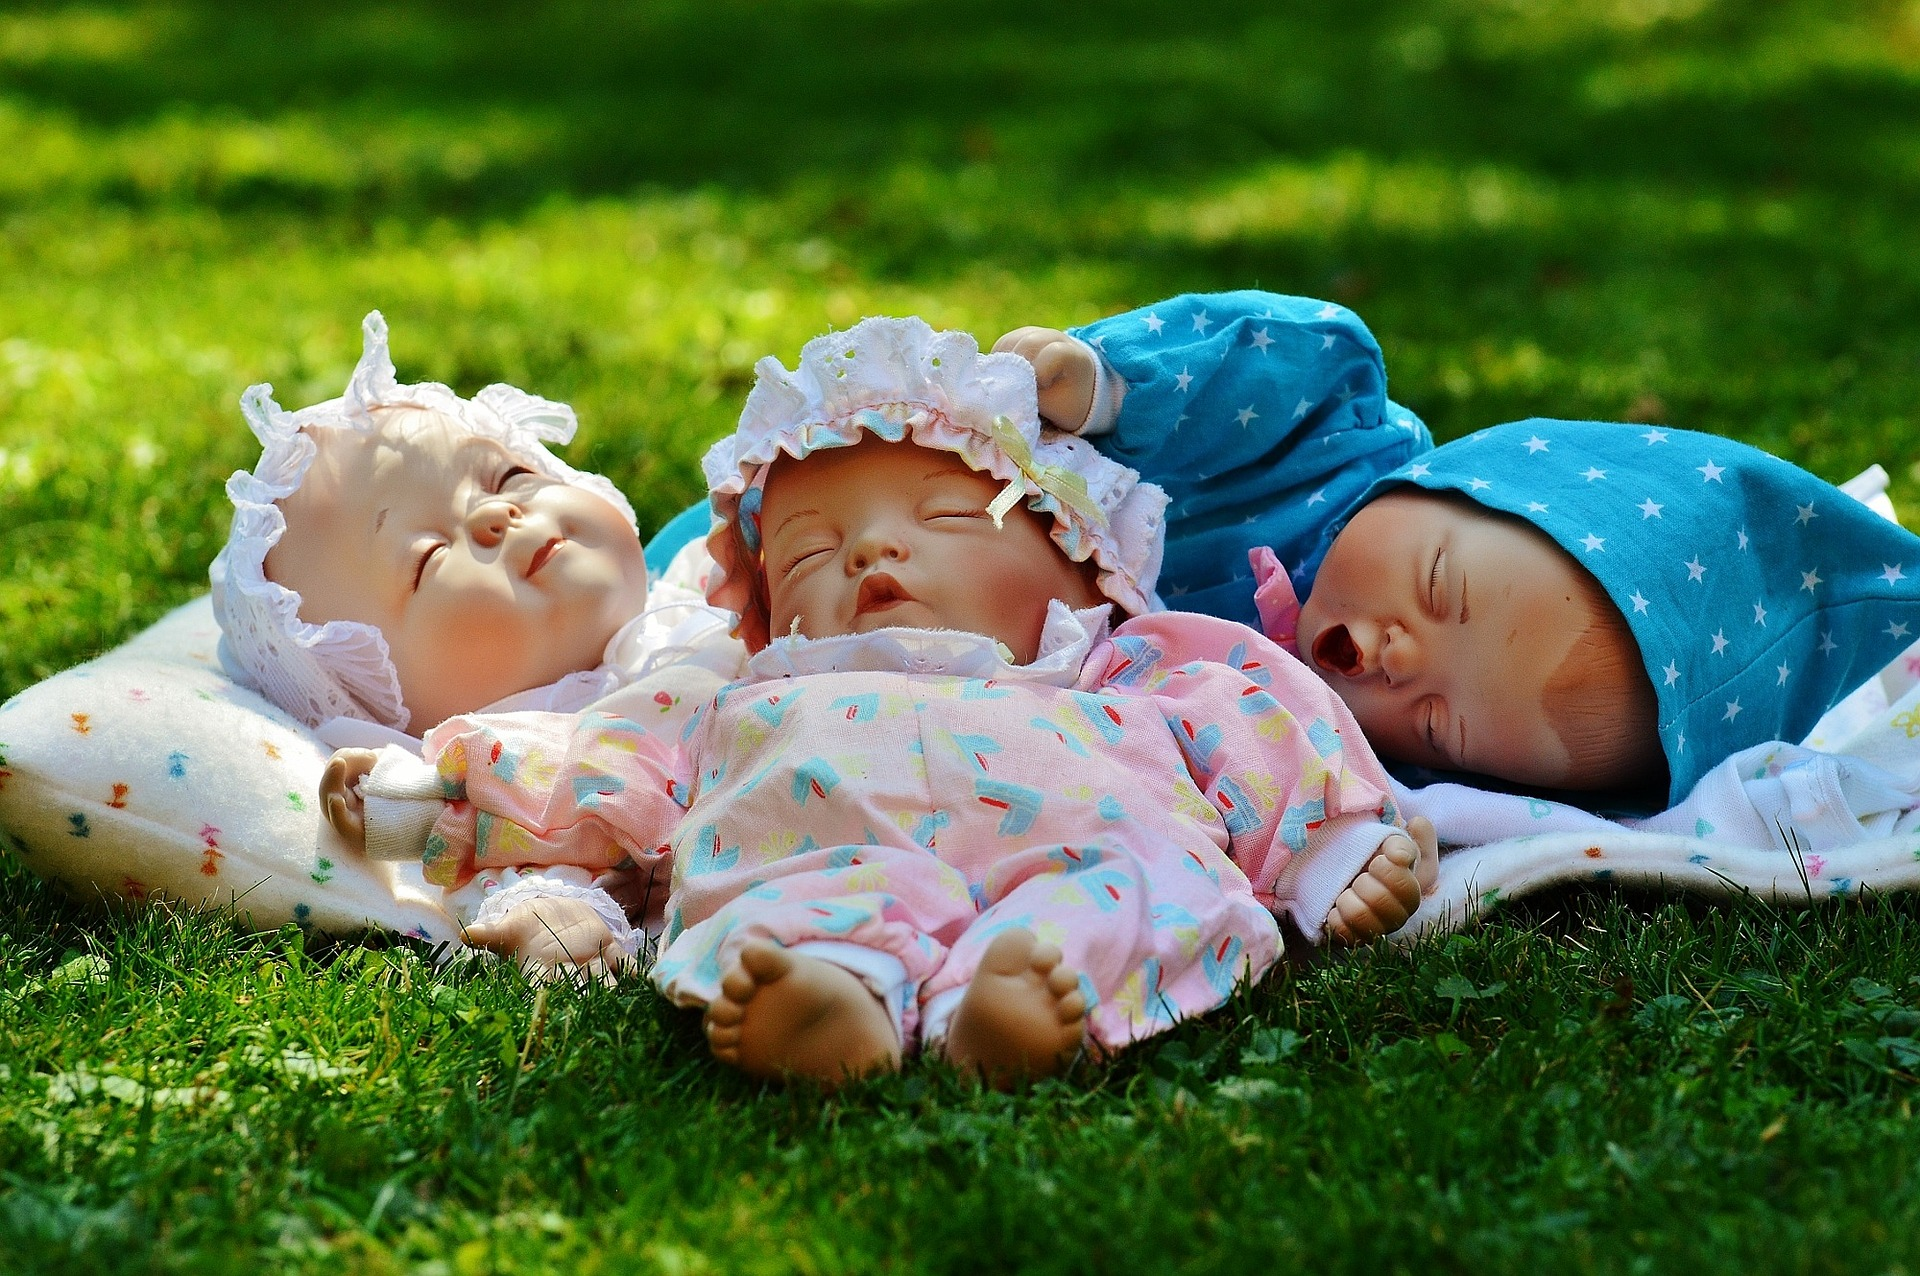 unique baby shower games. and image of 3 baby dolls to represent the unique baby shower game who's watching the baby.